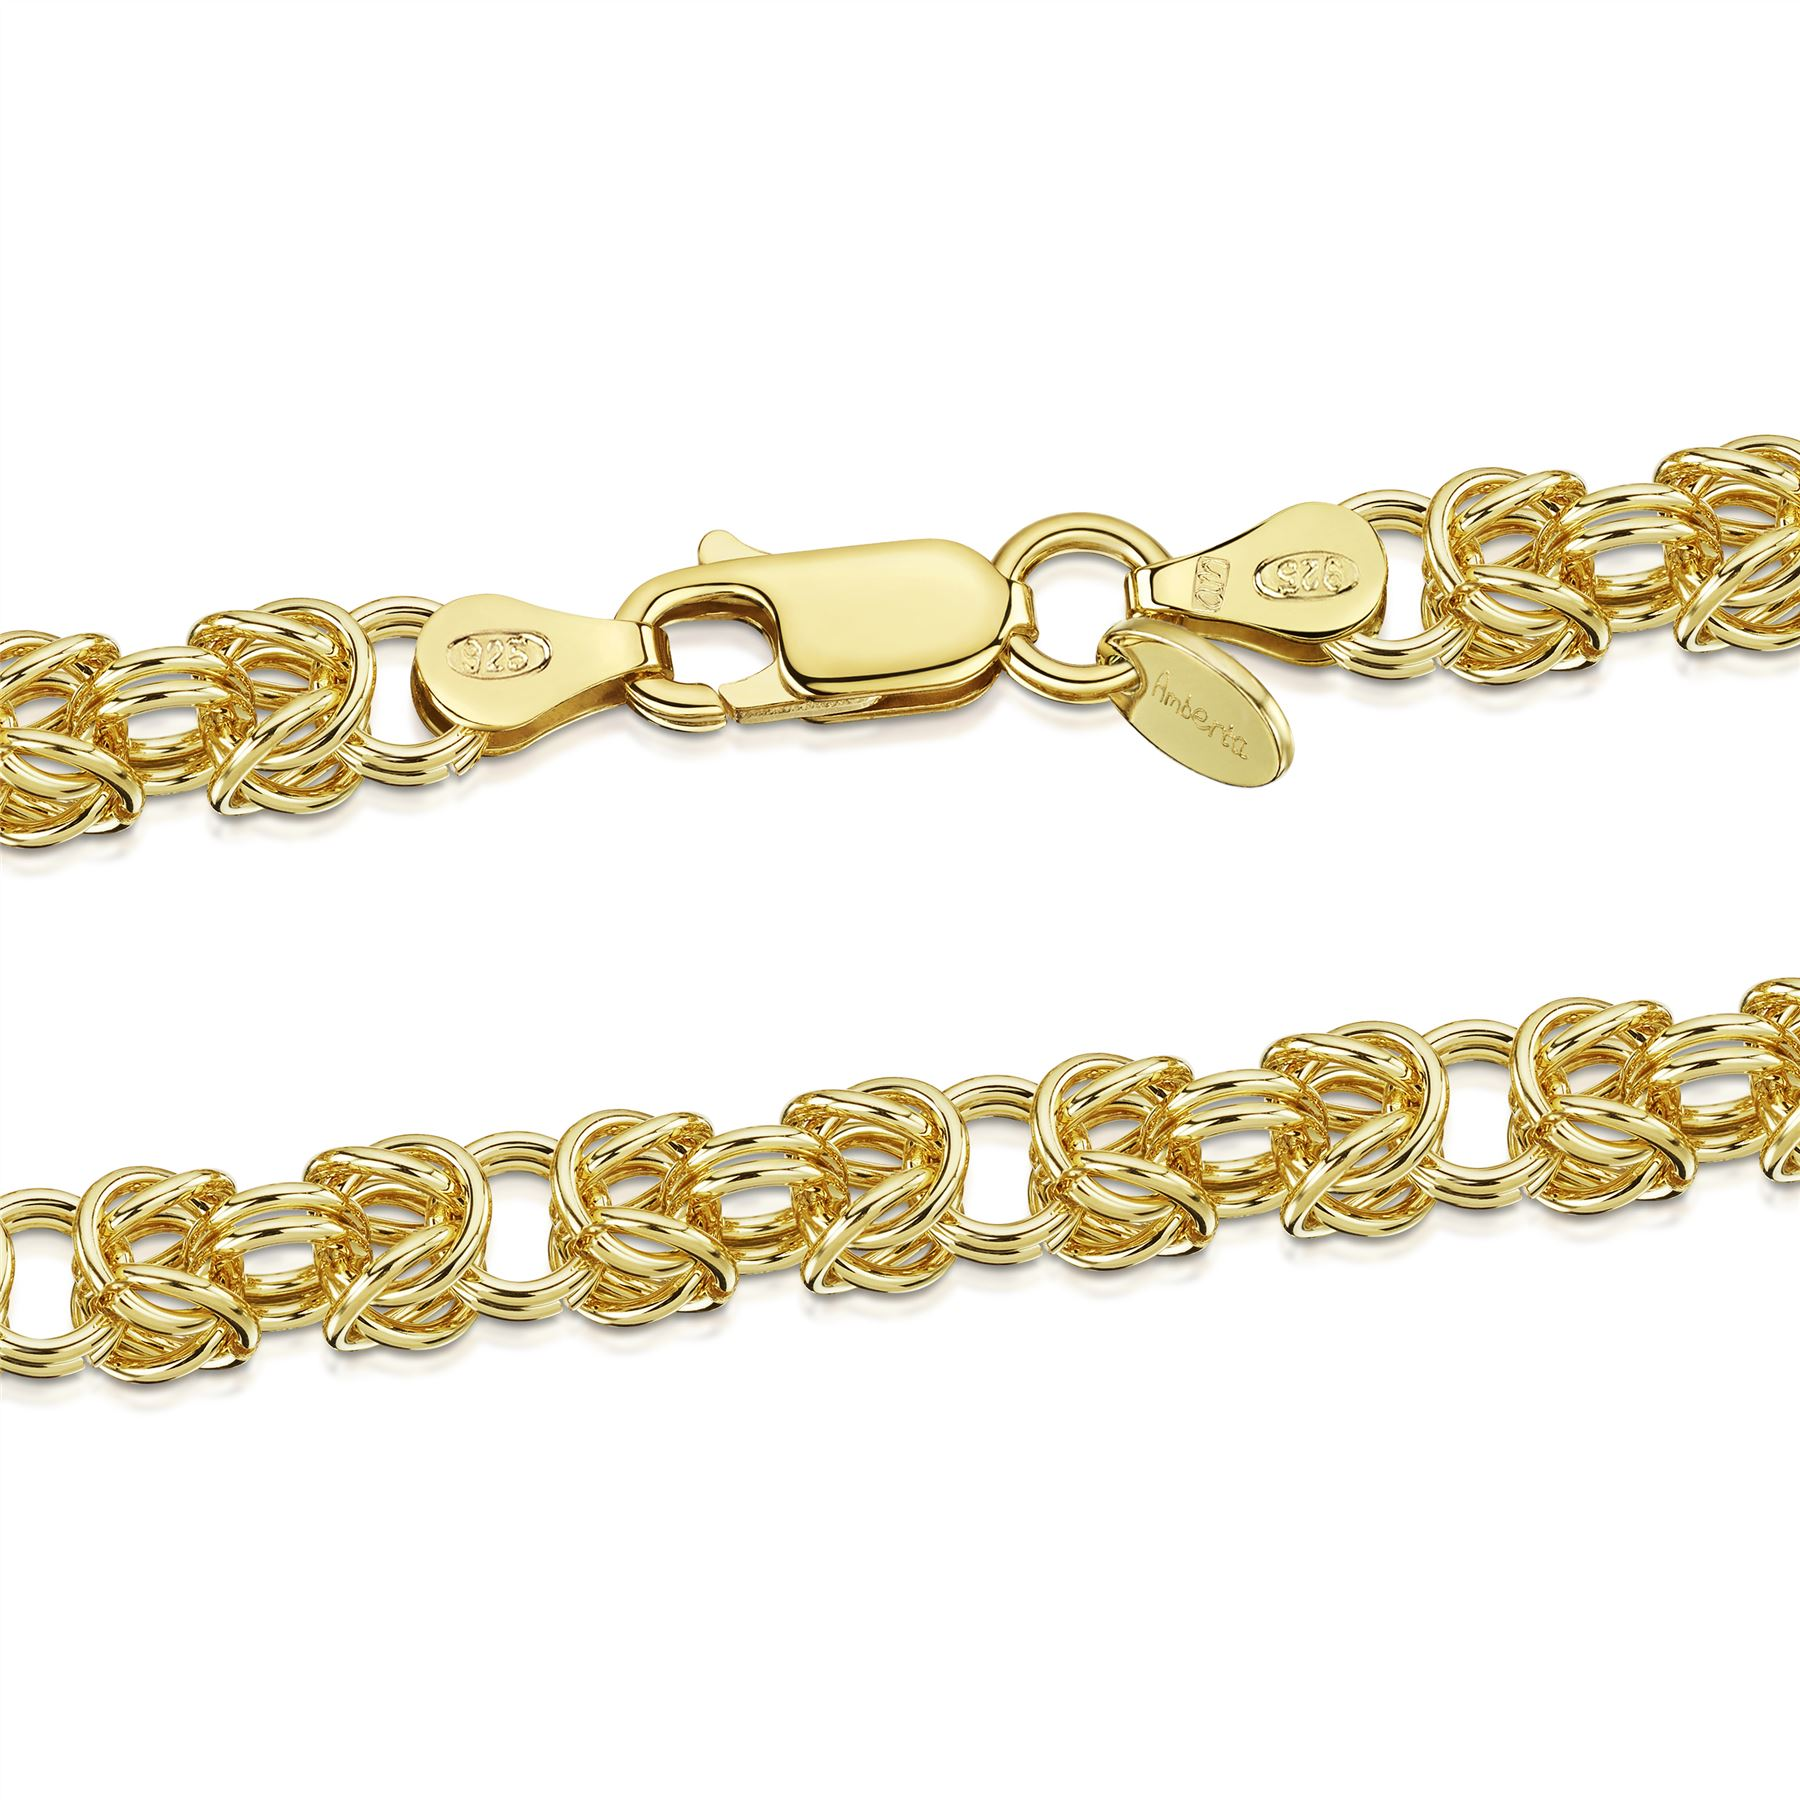 Amberta-Genuine-Real-925-Sterling-Silver-Chain-Bracelet-for-Women-from-Italy miniature 11